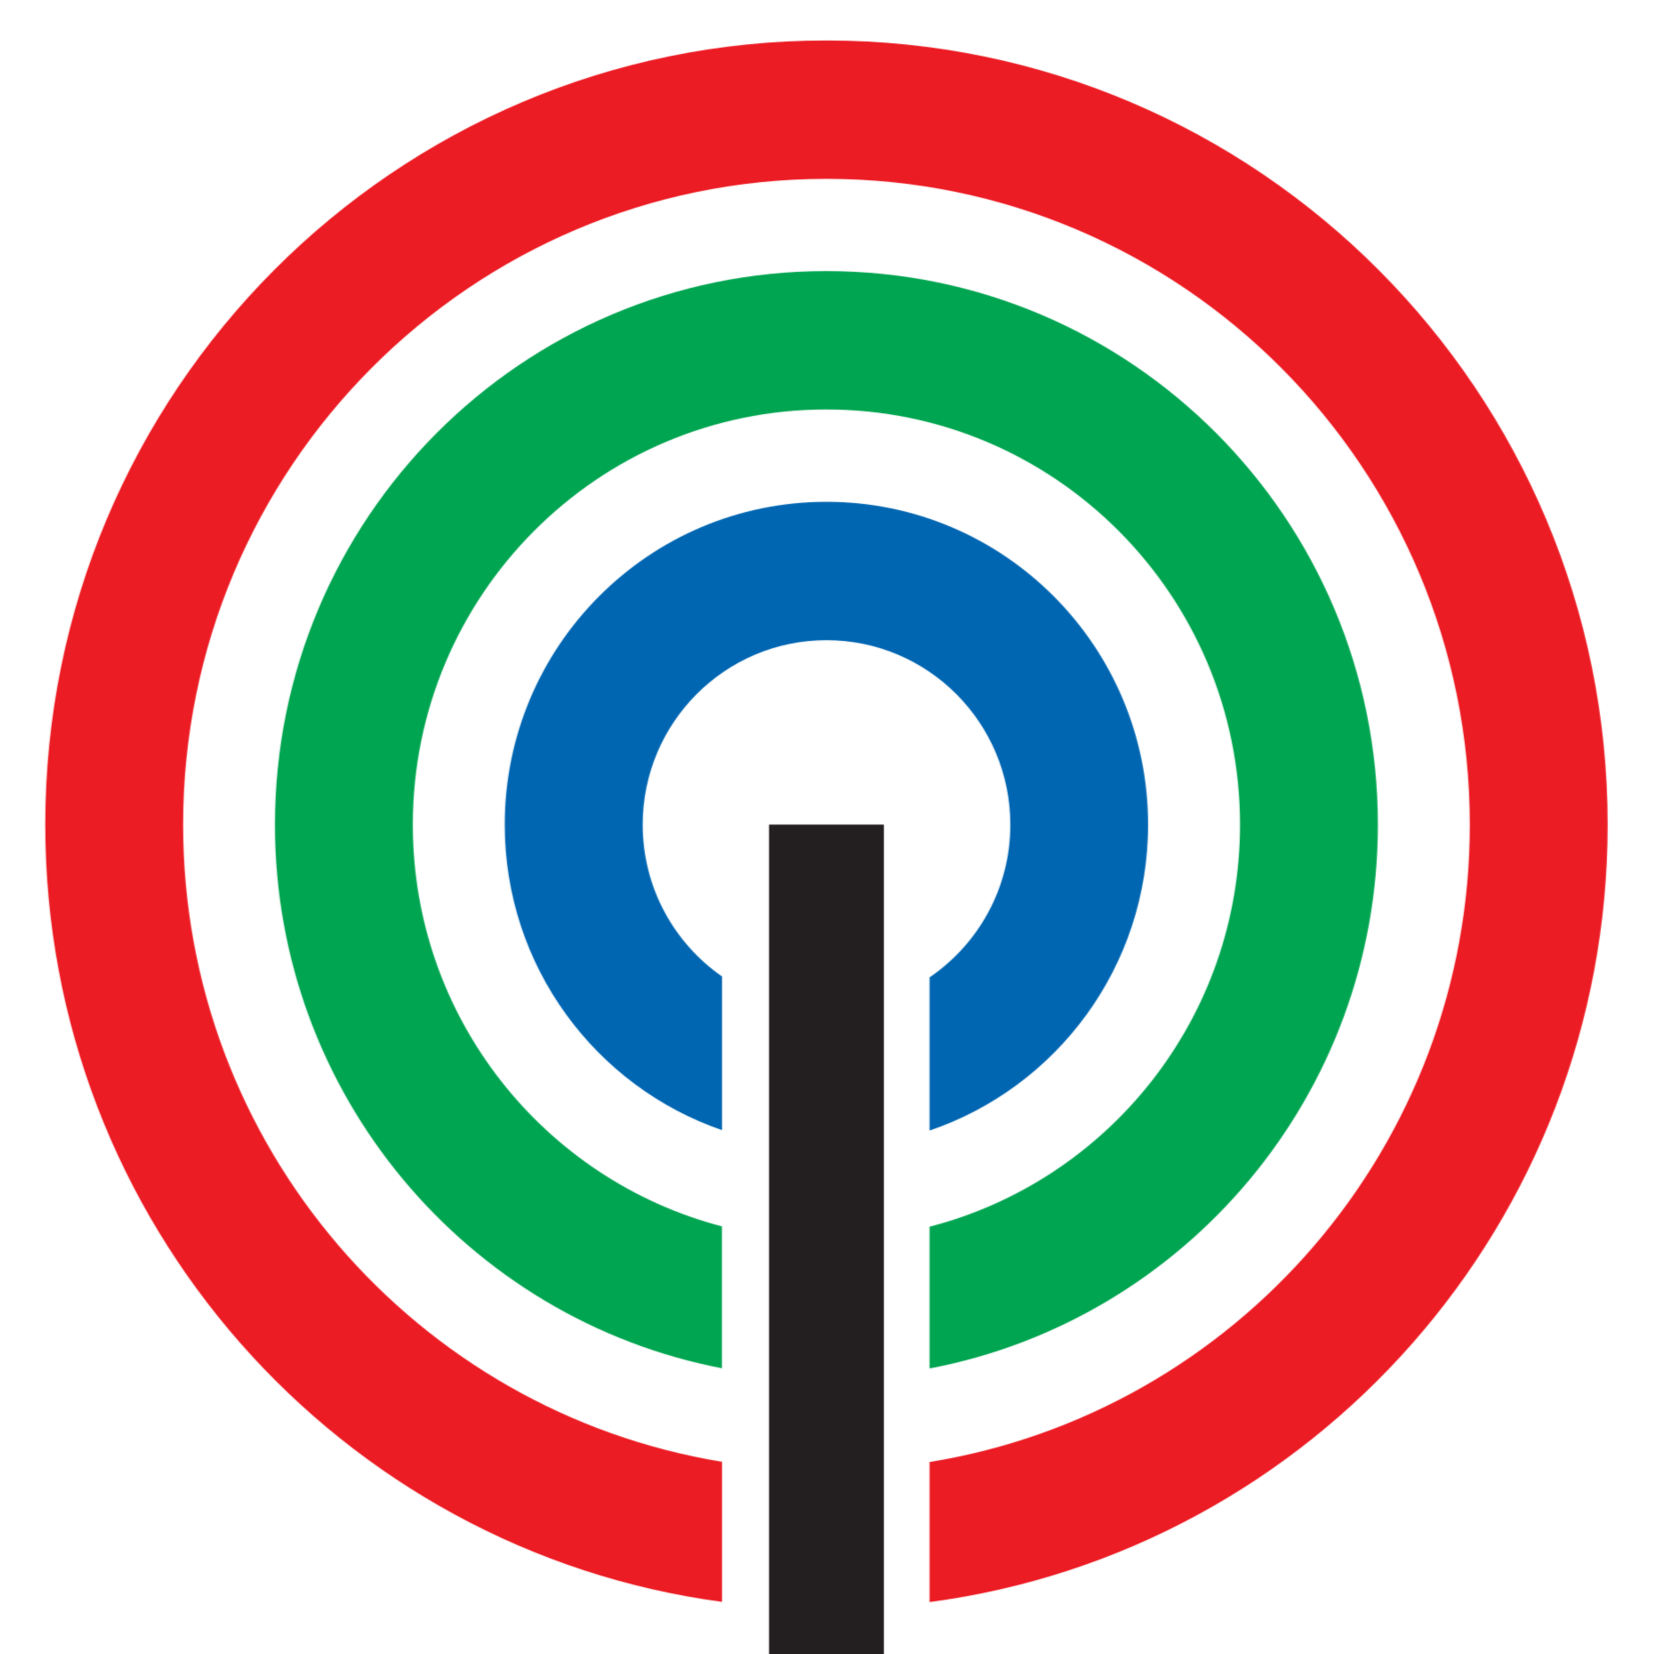 ABS-CBN RGB 2016